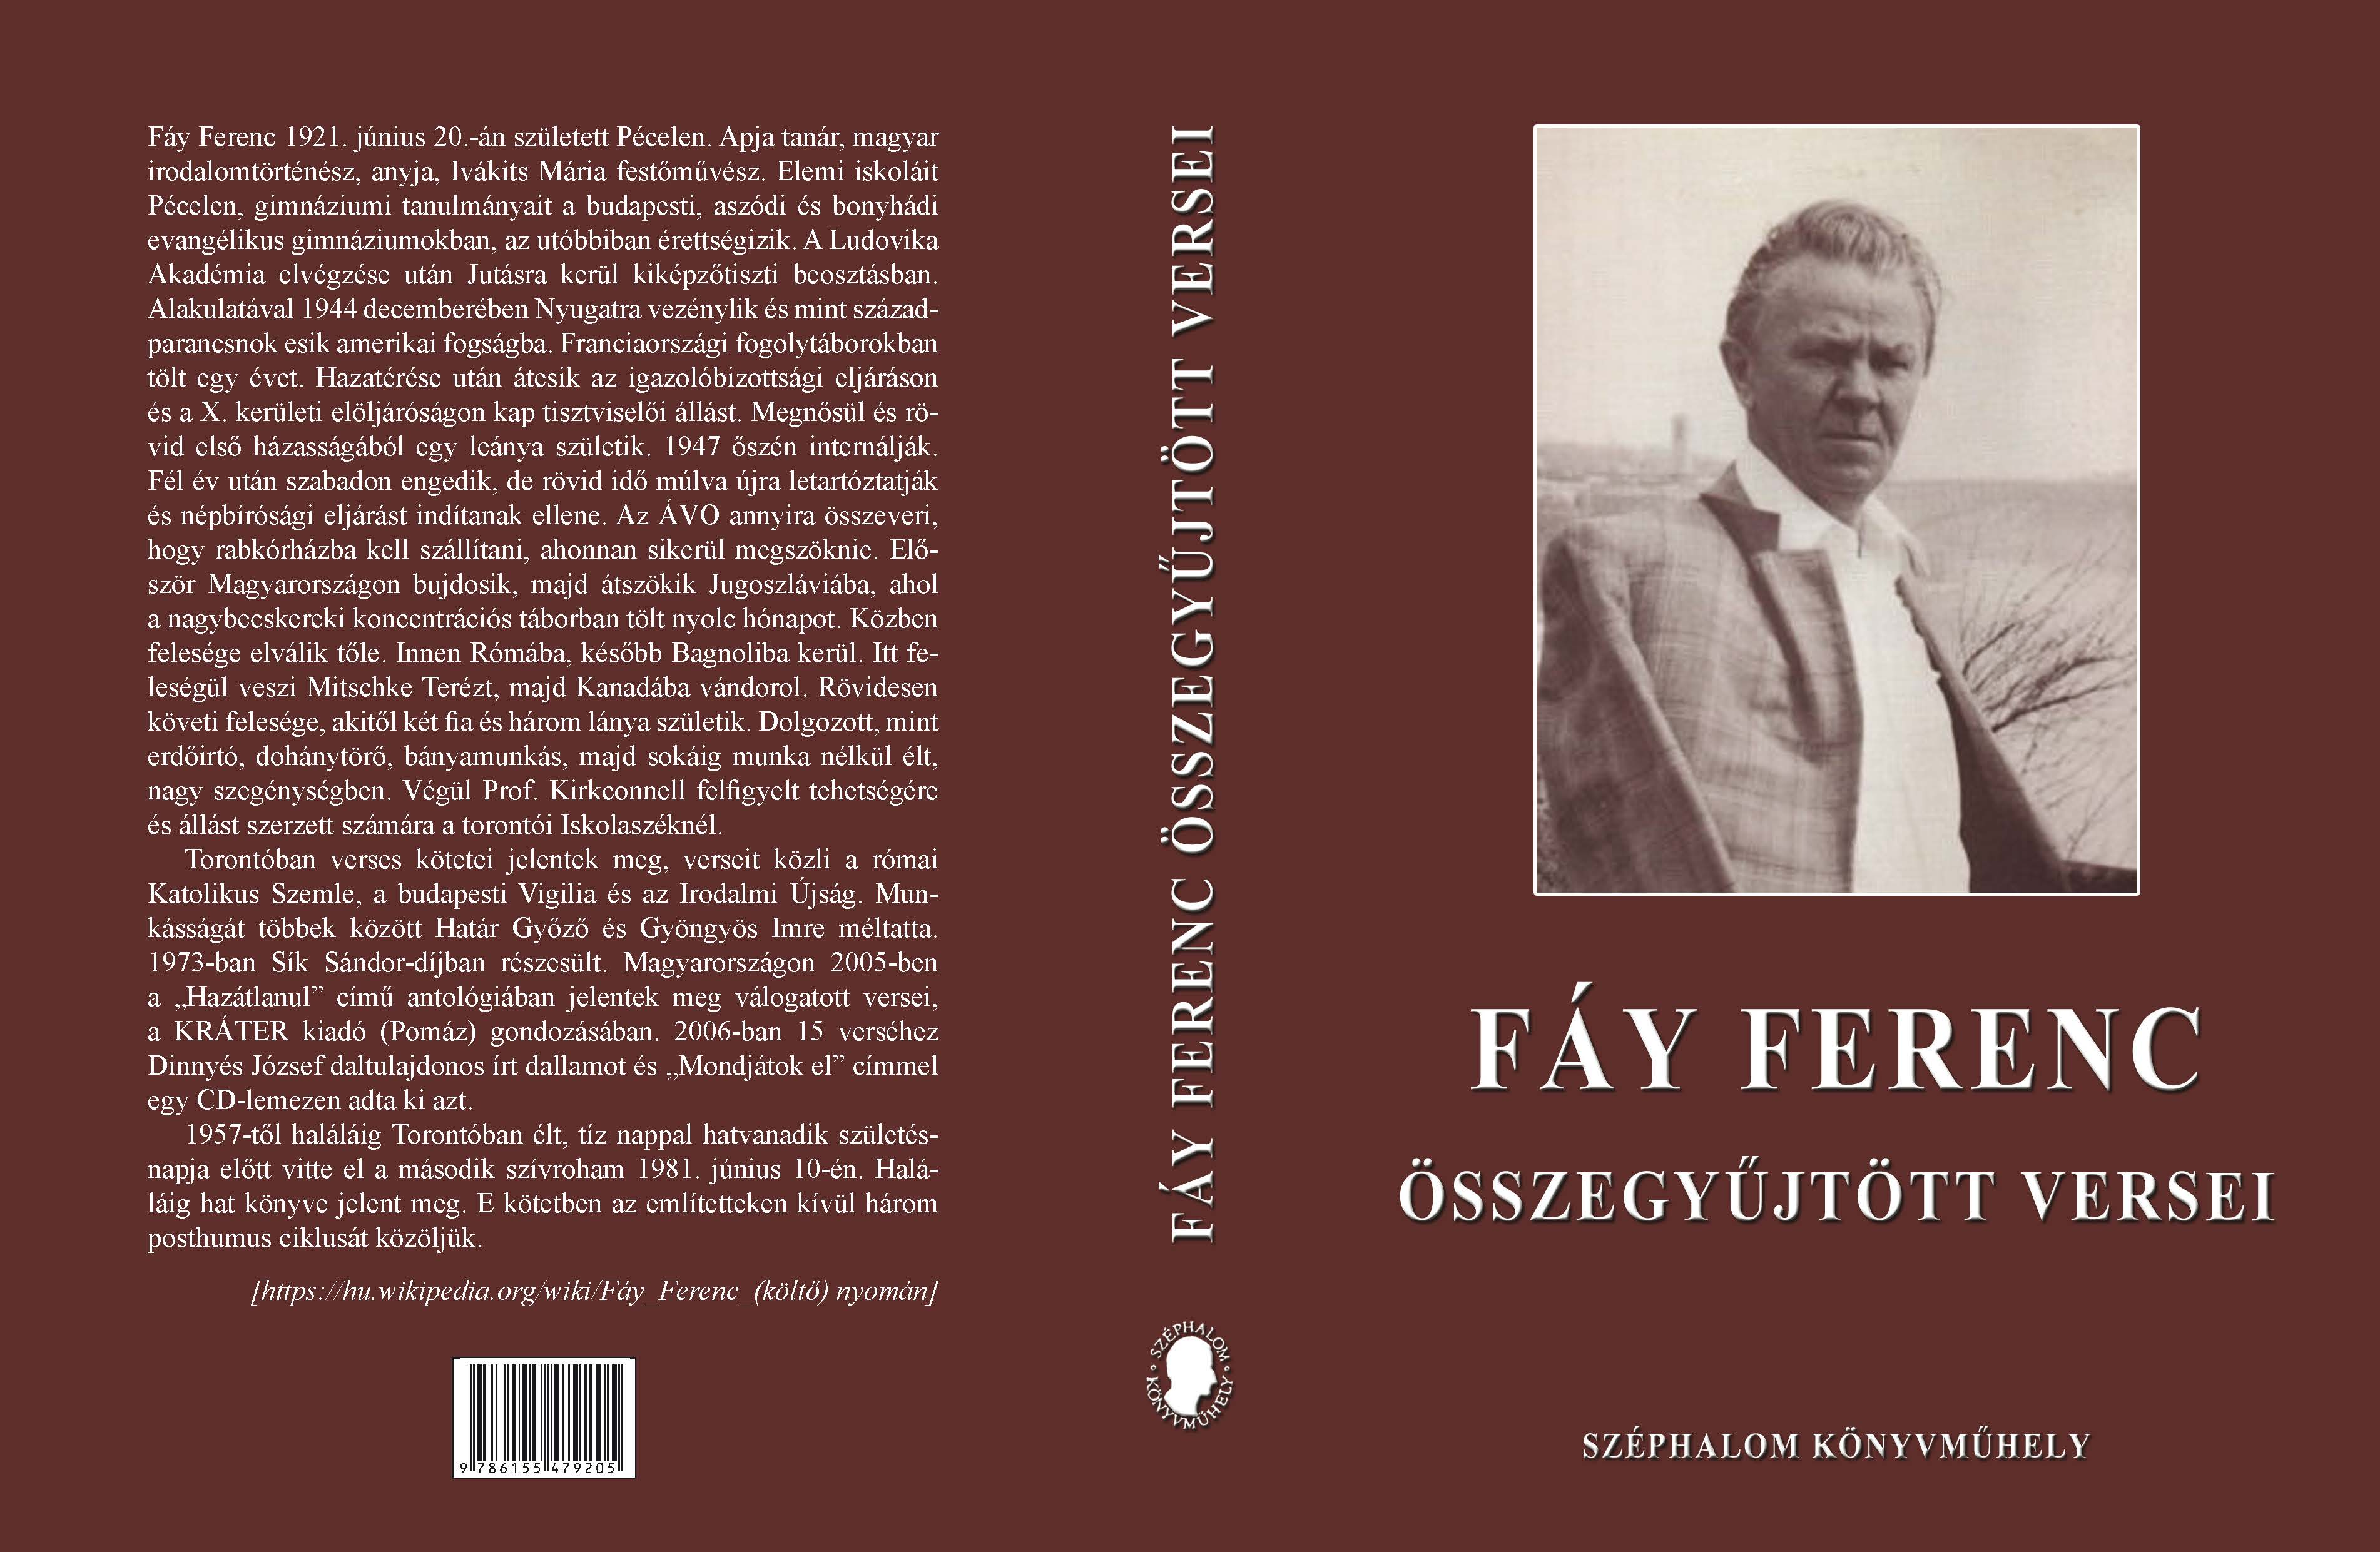 Fay Ferenc